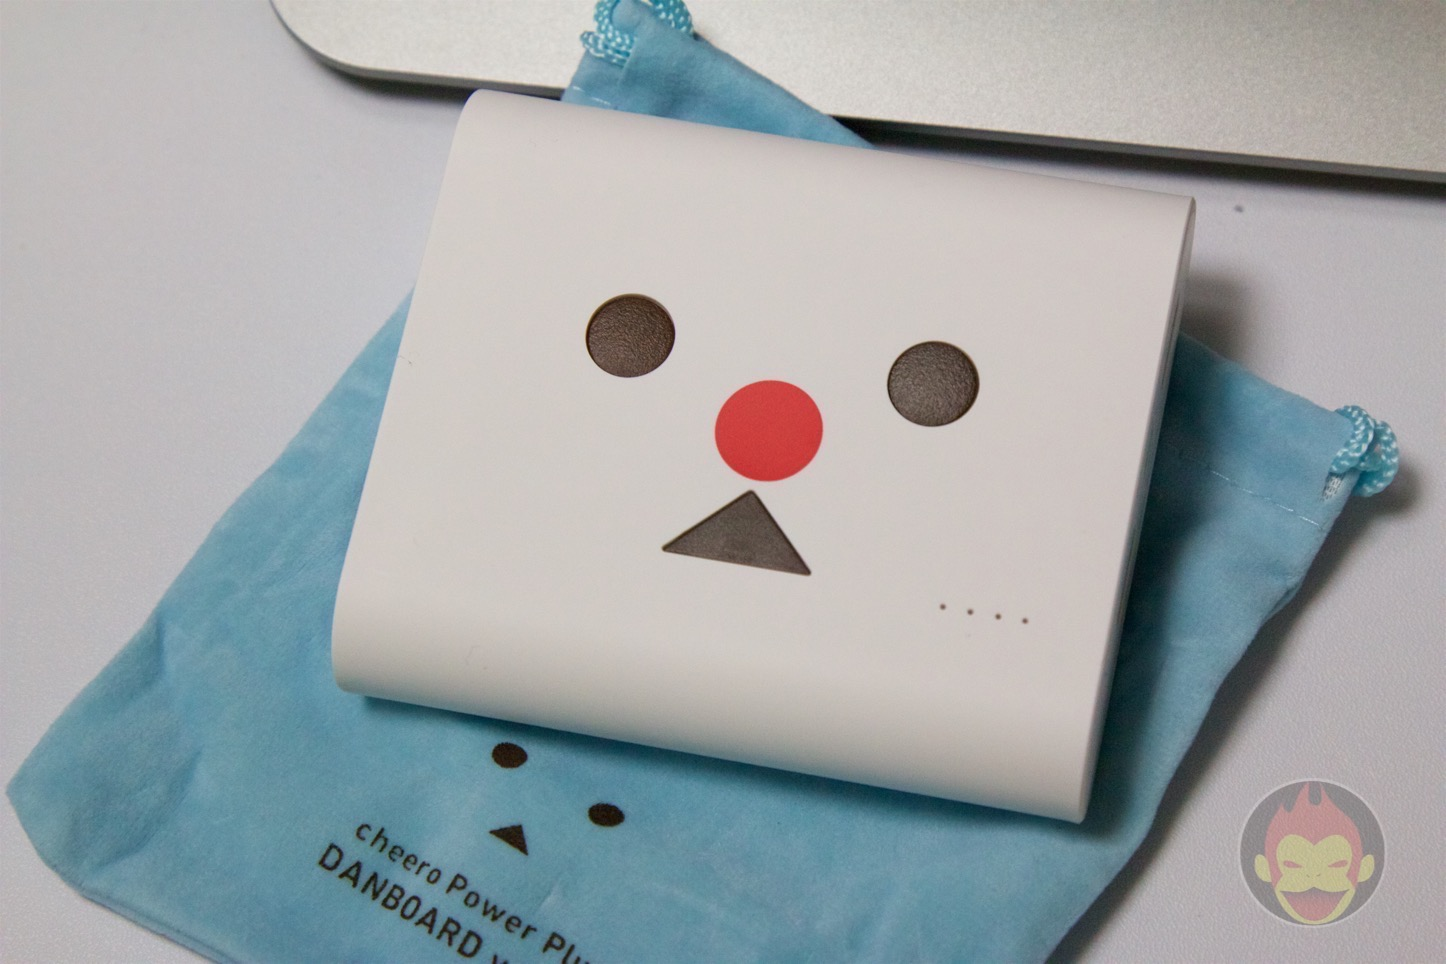 Cheero Powerplus 3 DANBOARD Version Snowman